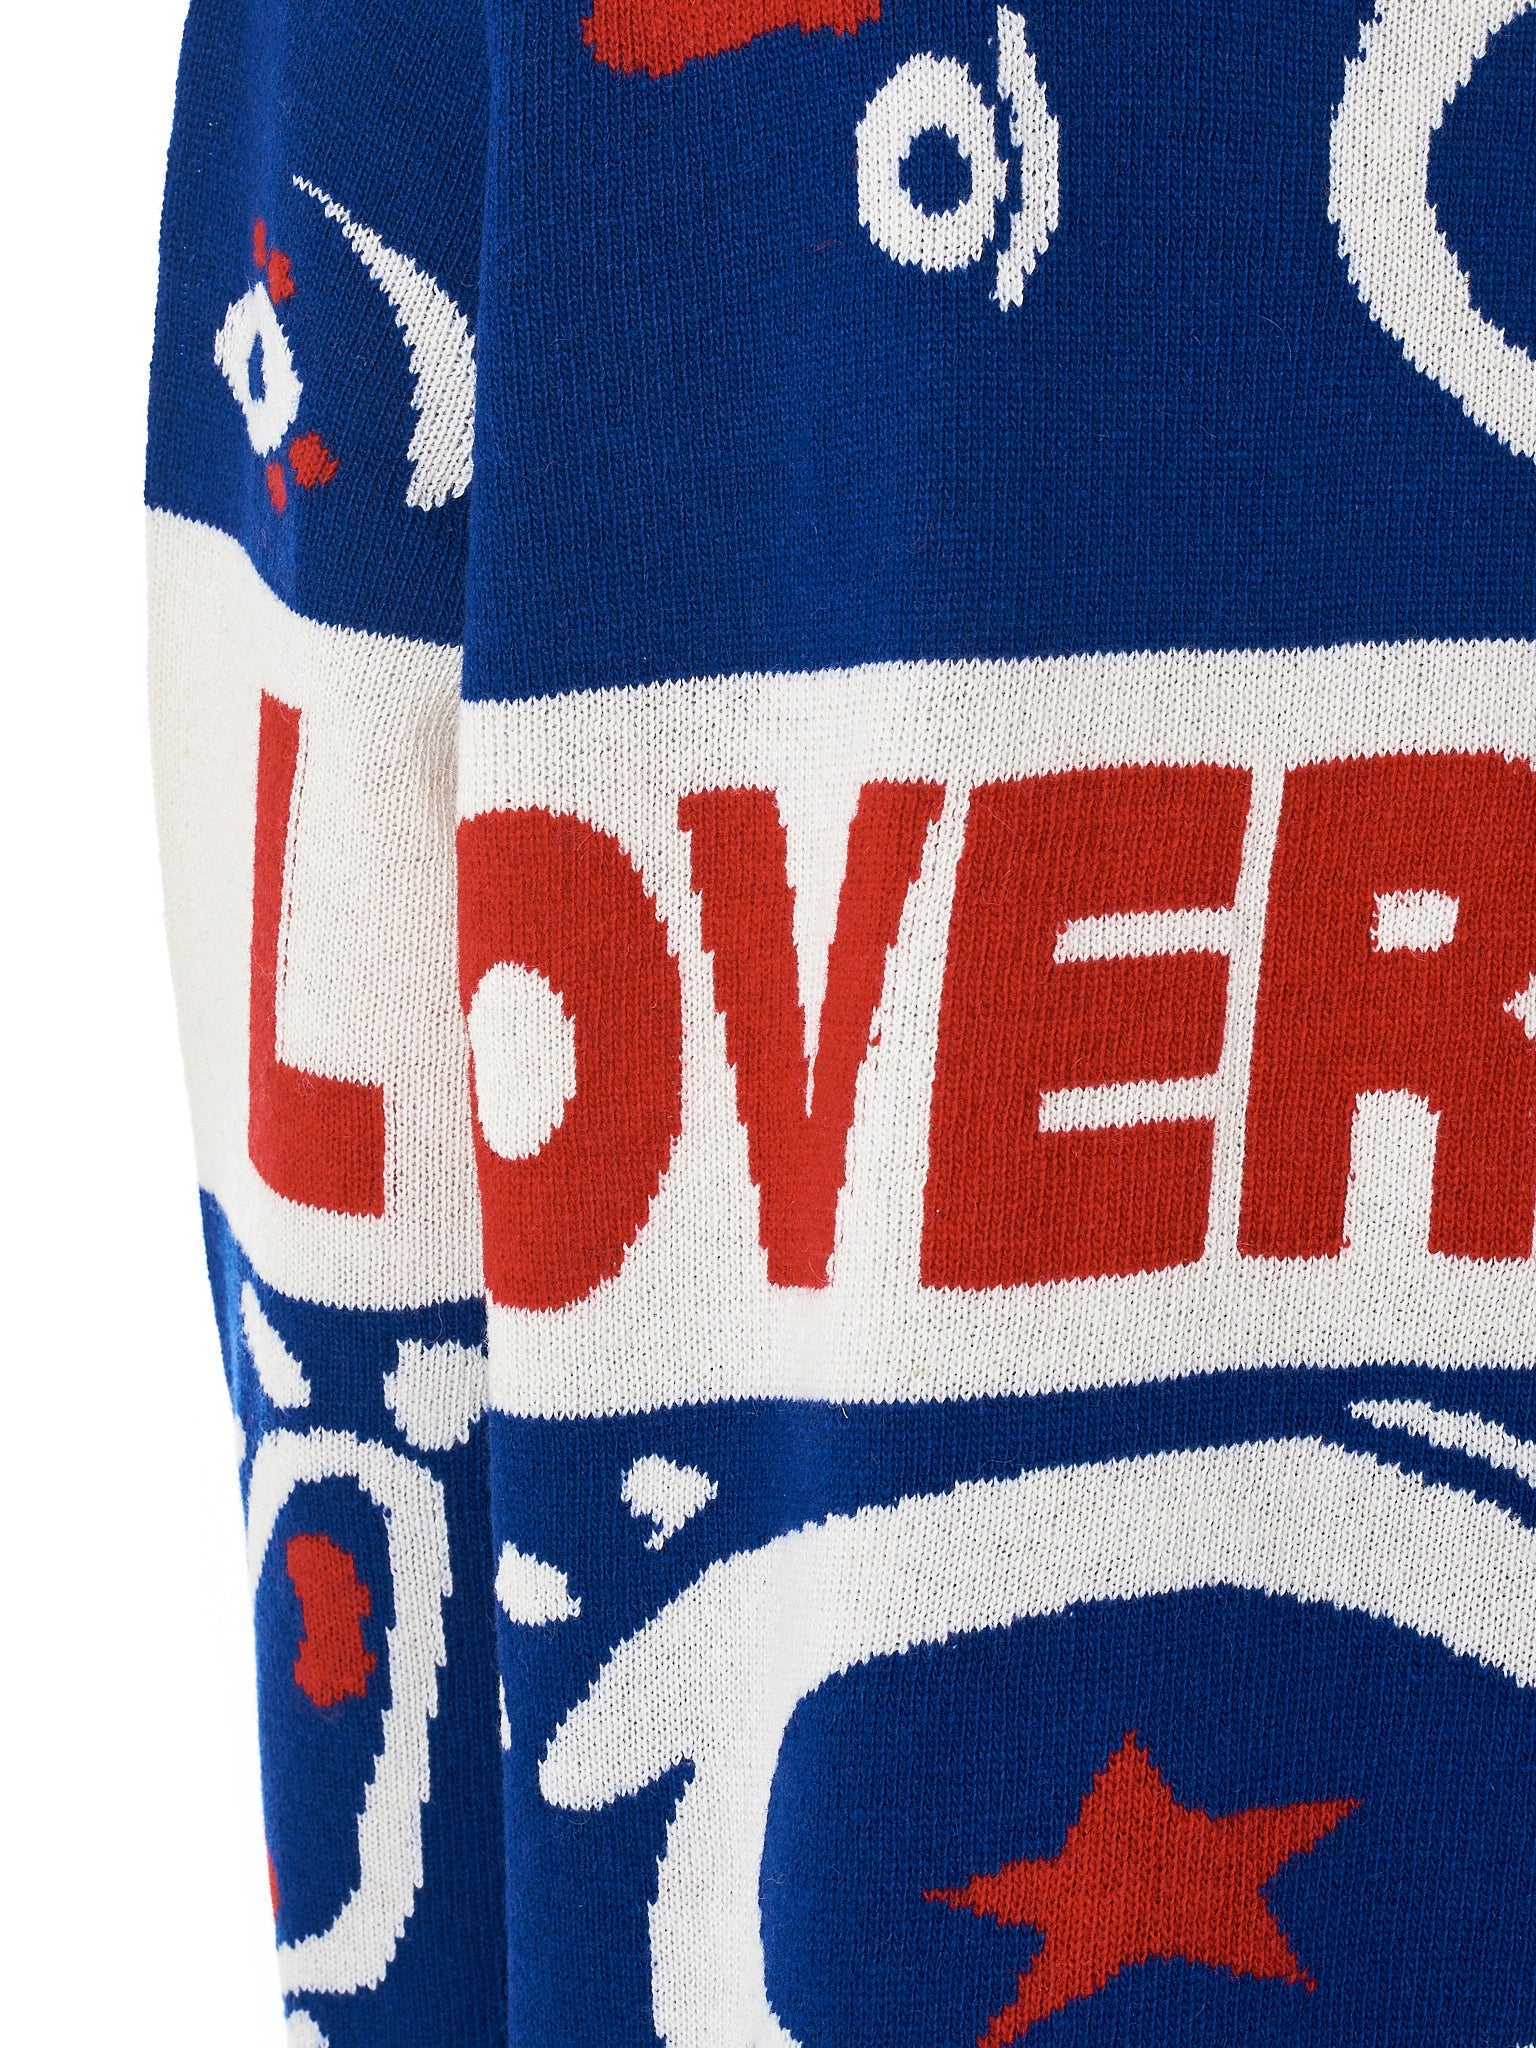 Charles Jeffrey Loverboy Sweater - Hlorenzo Detail 4